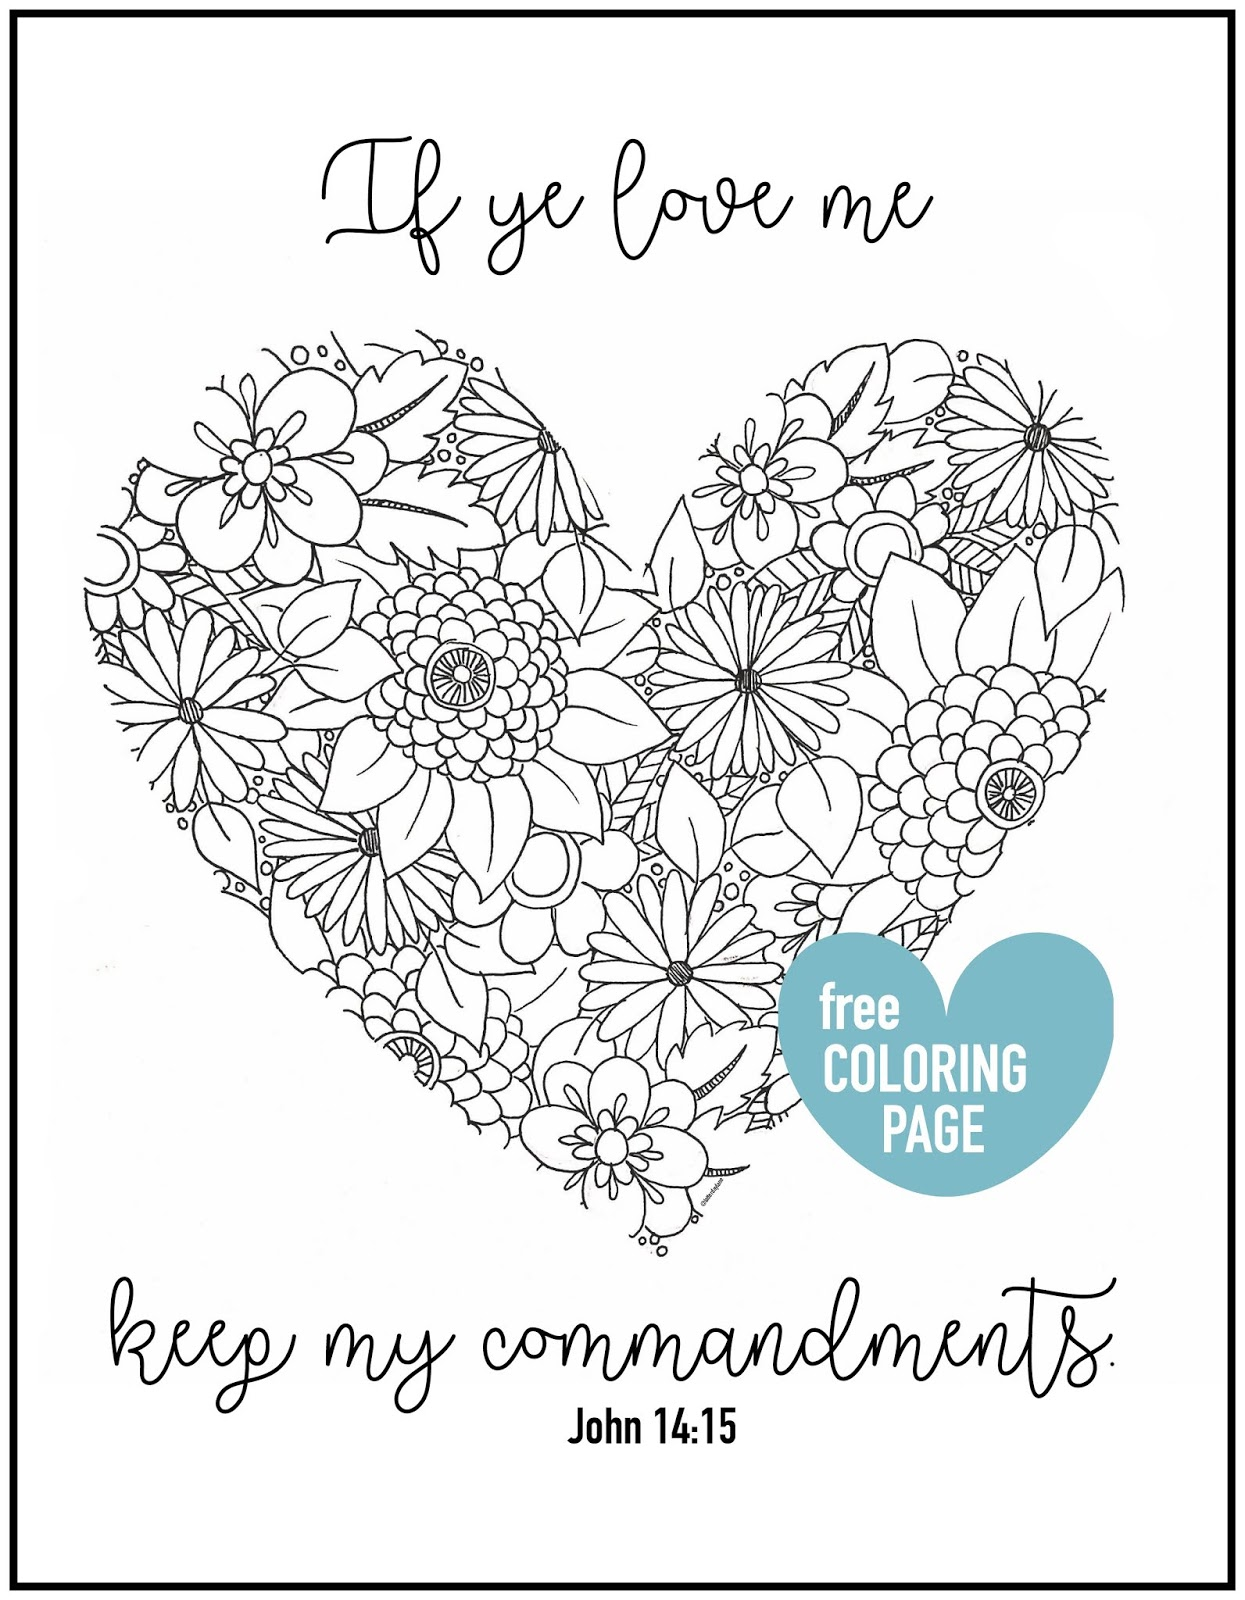 keep the commandments coloring page.html